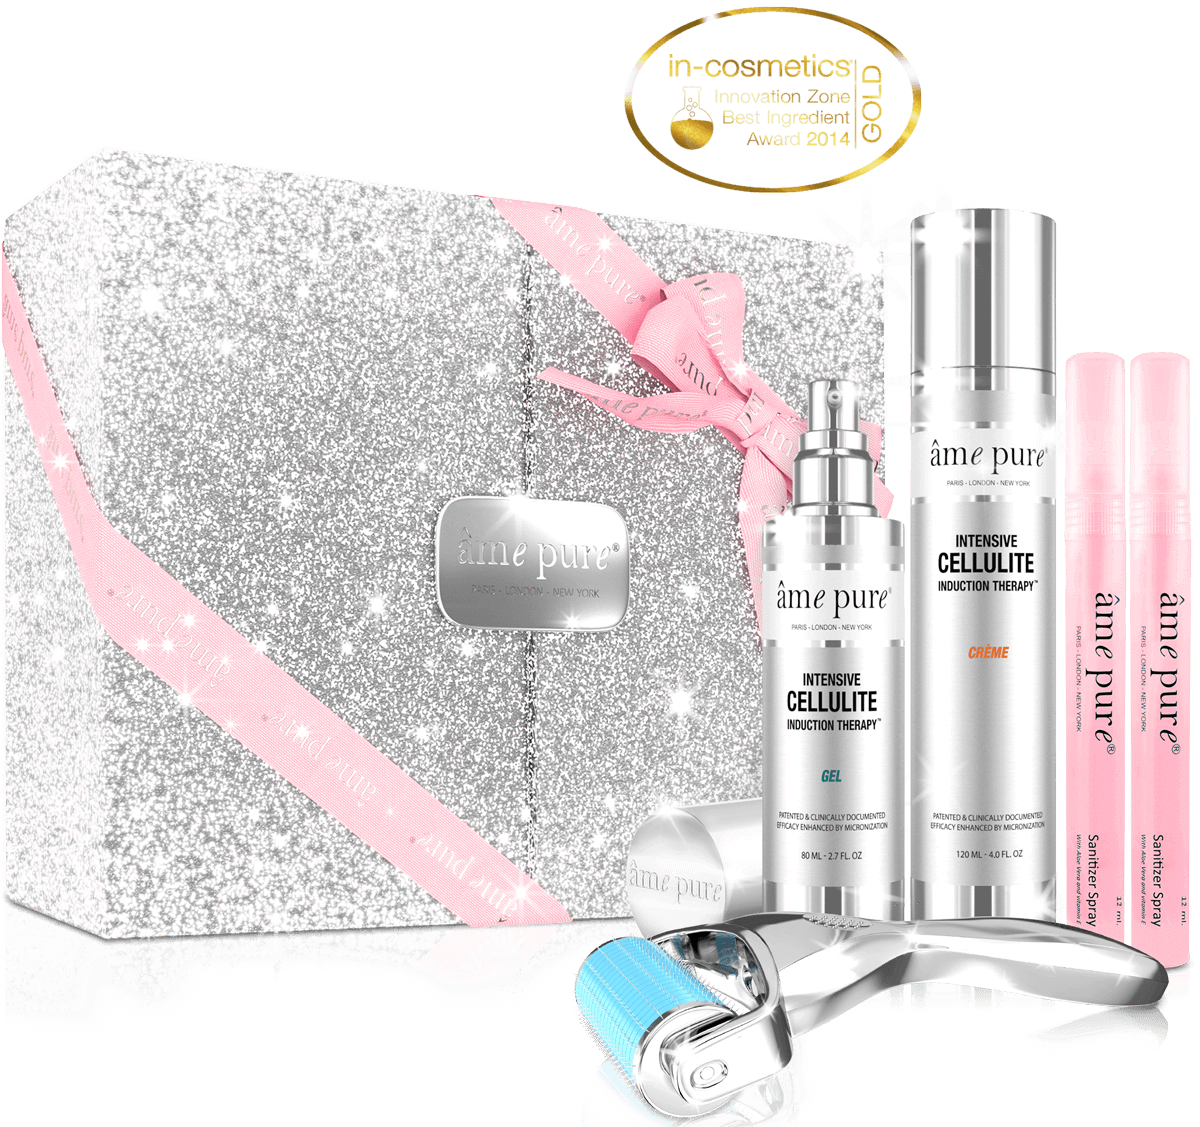 Intensive Cellulite Eraser™ + Geschenkbox